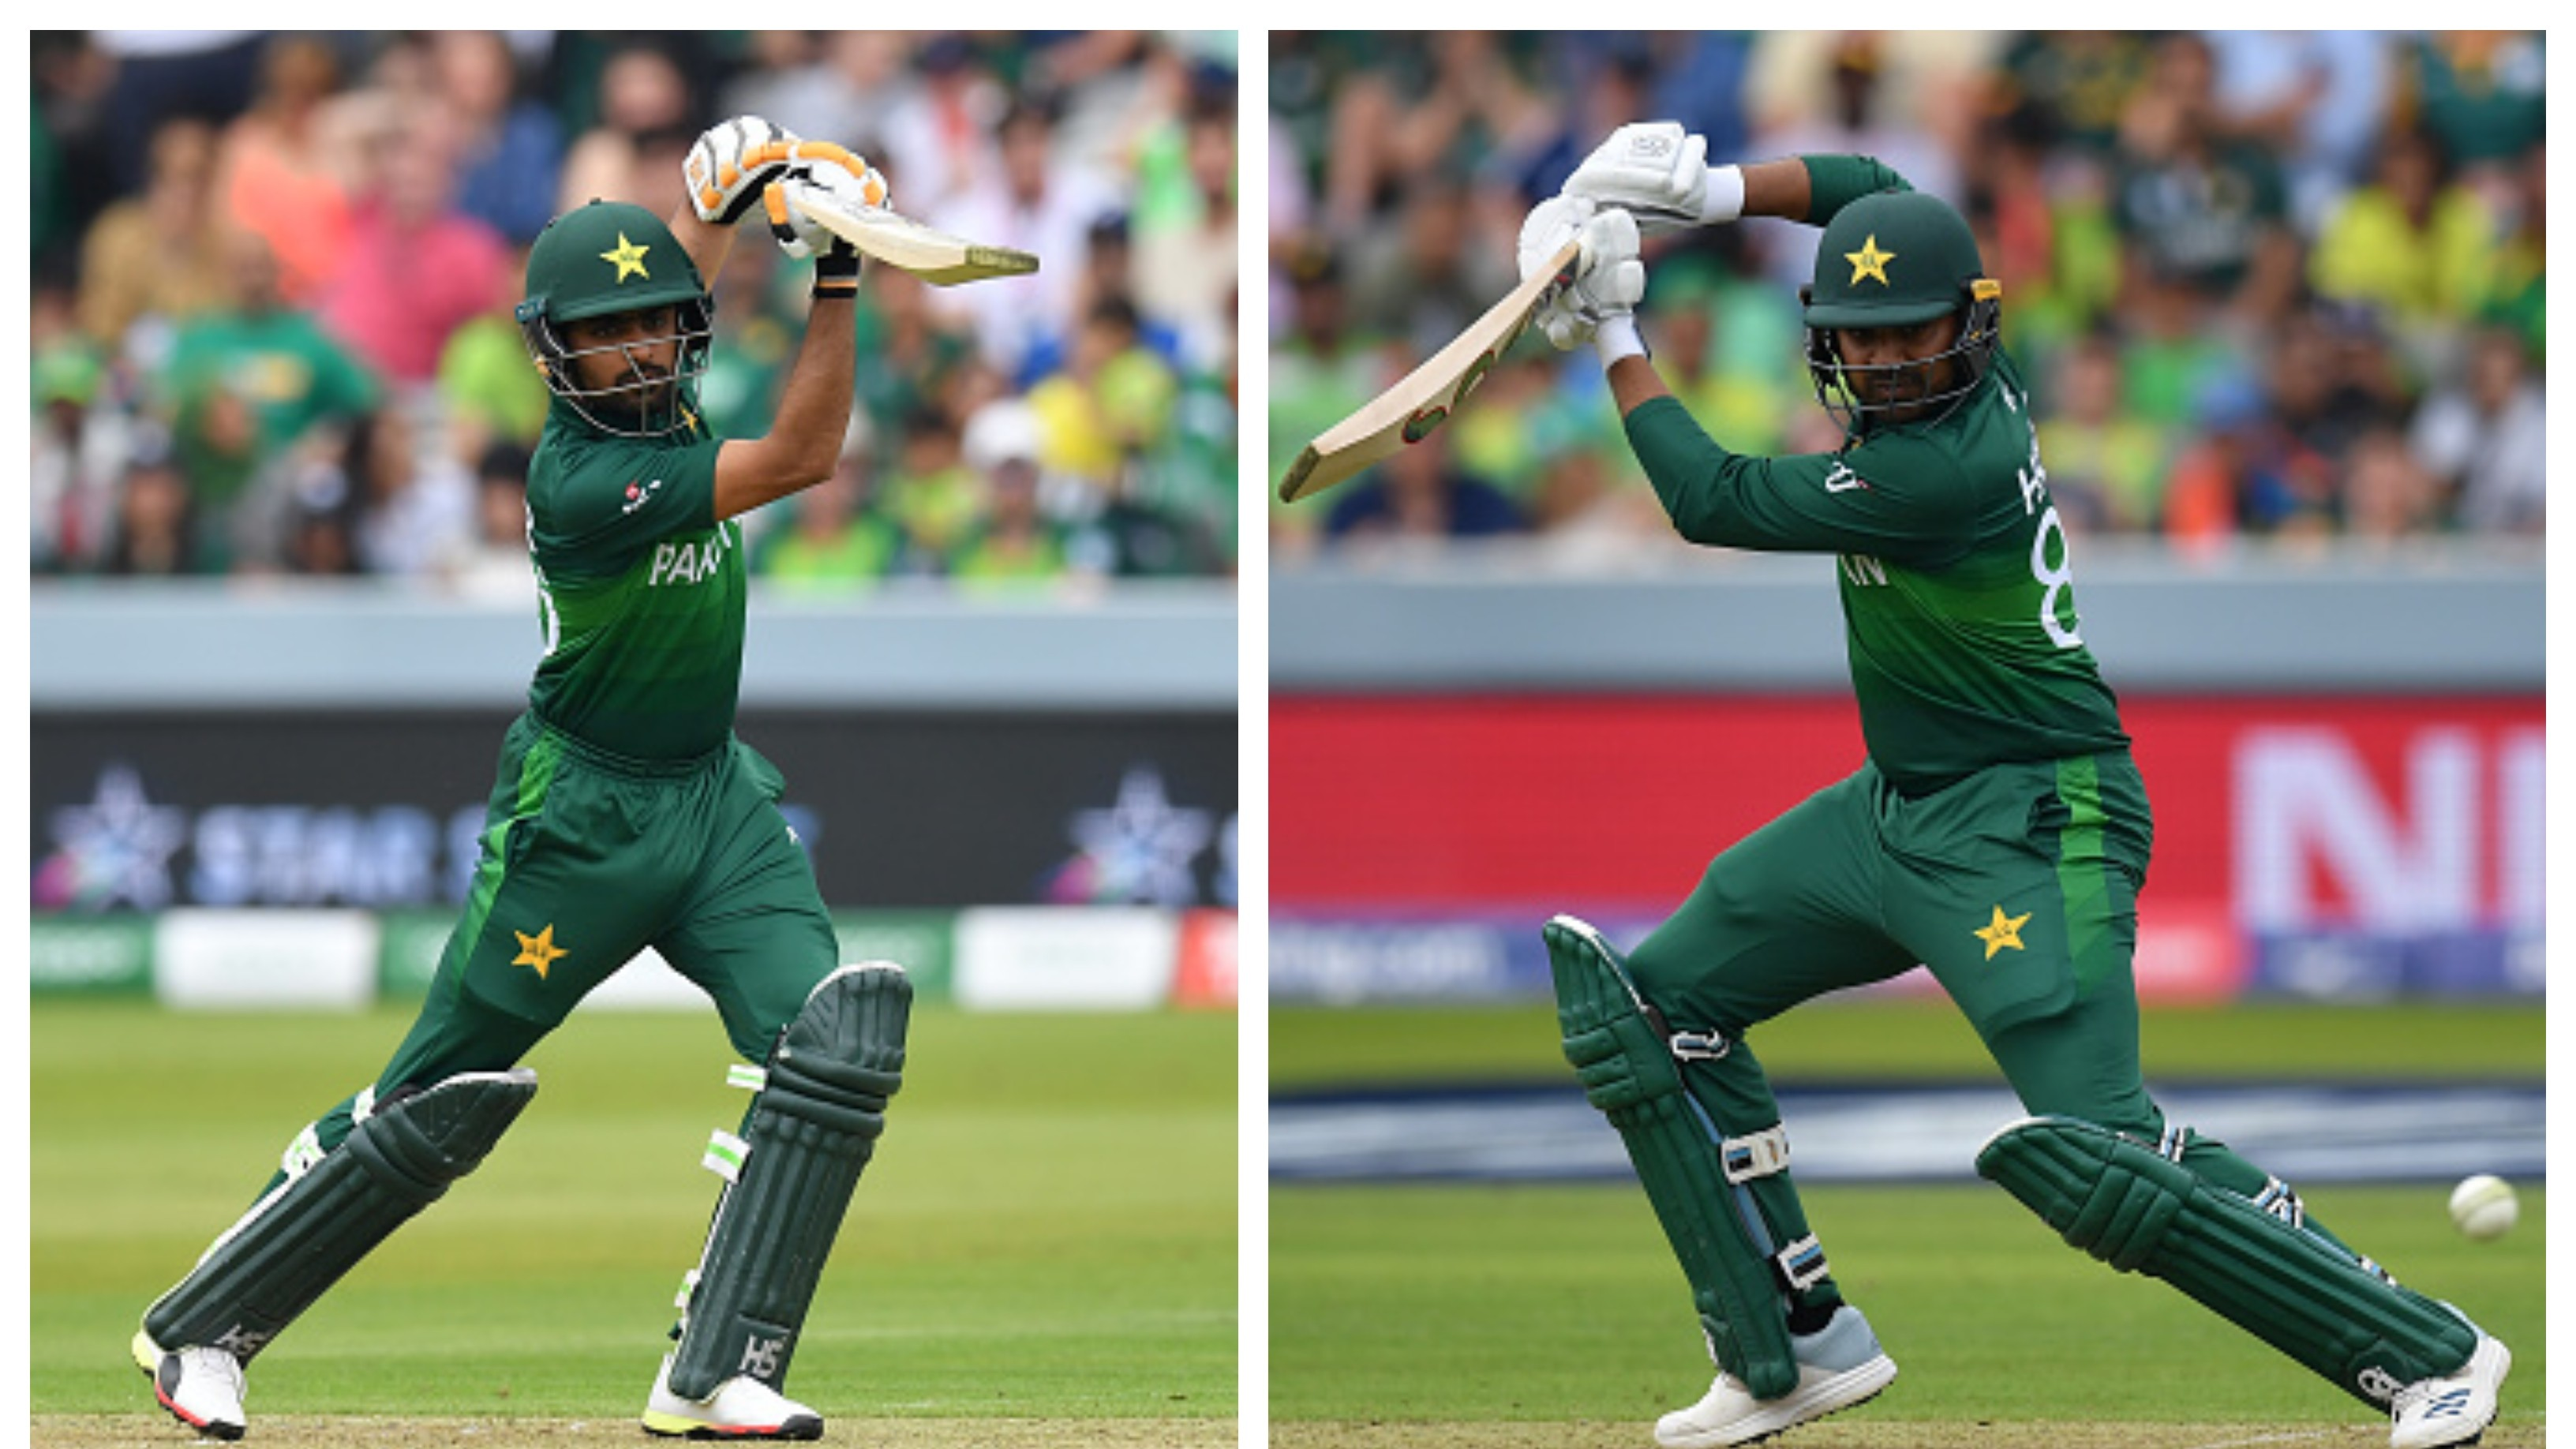 CWC 2019: PAK v SA - Fifties from Babar Azam, Haris Sohail help Pakistan post 308/7 at Lord's